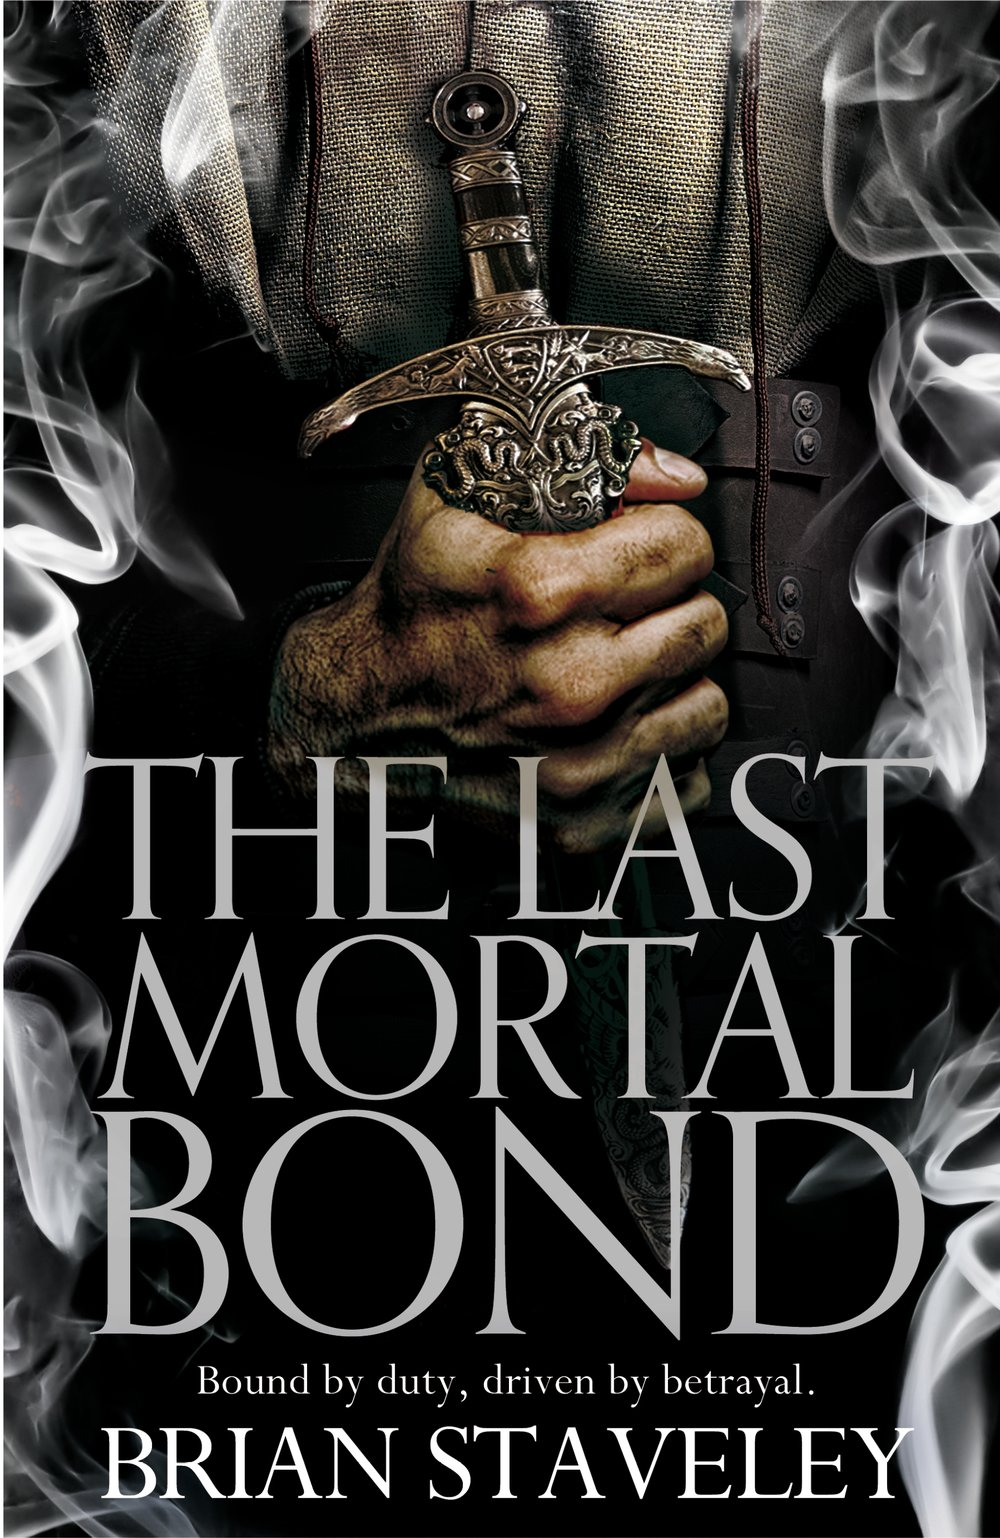 9781447235835The Last Mortal Bond.jpg